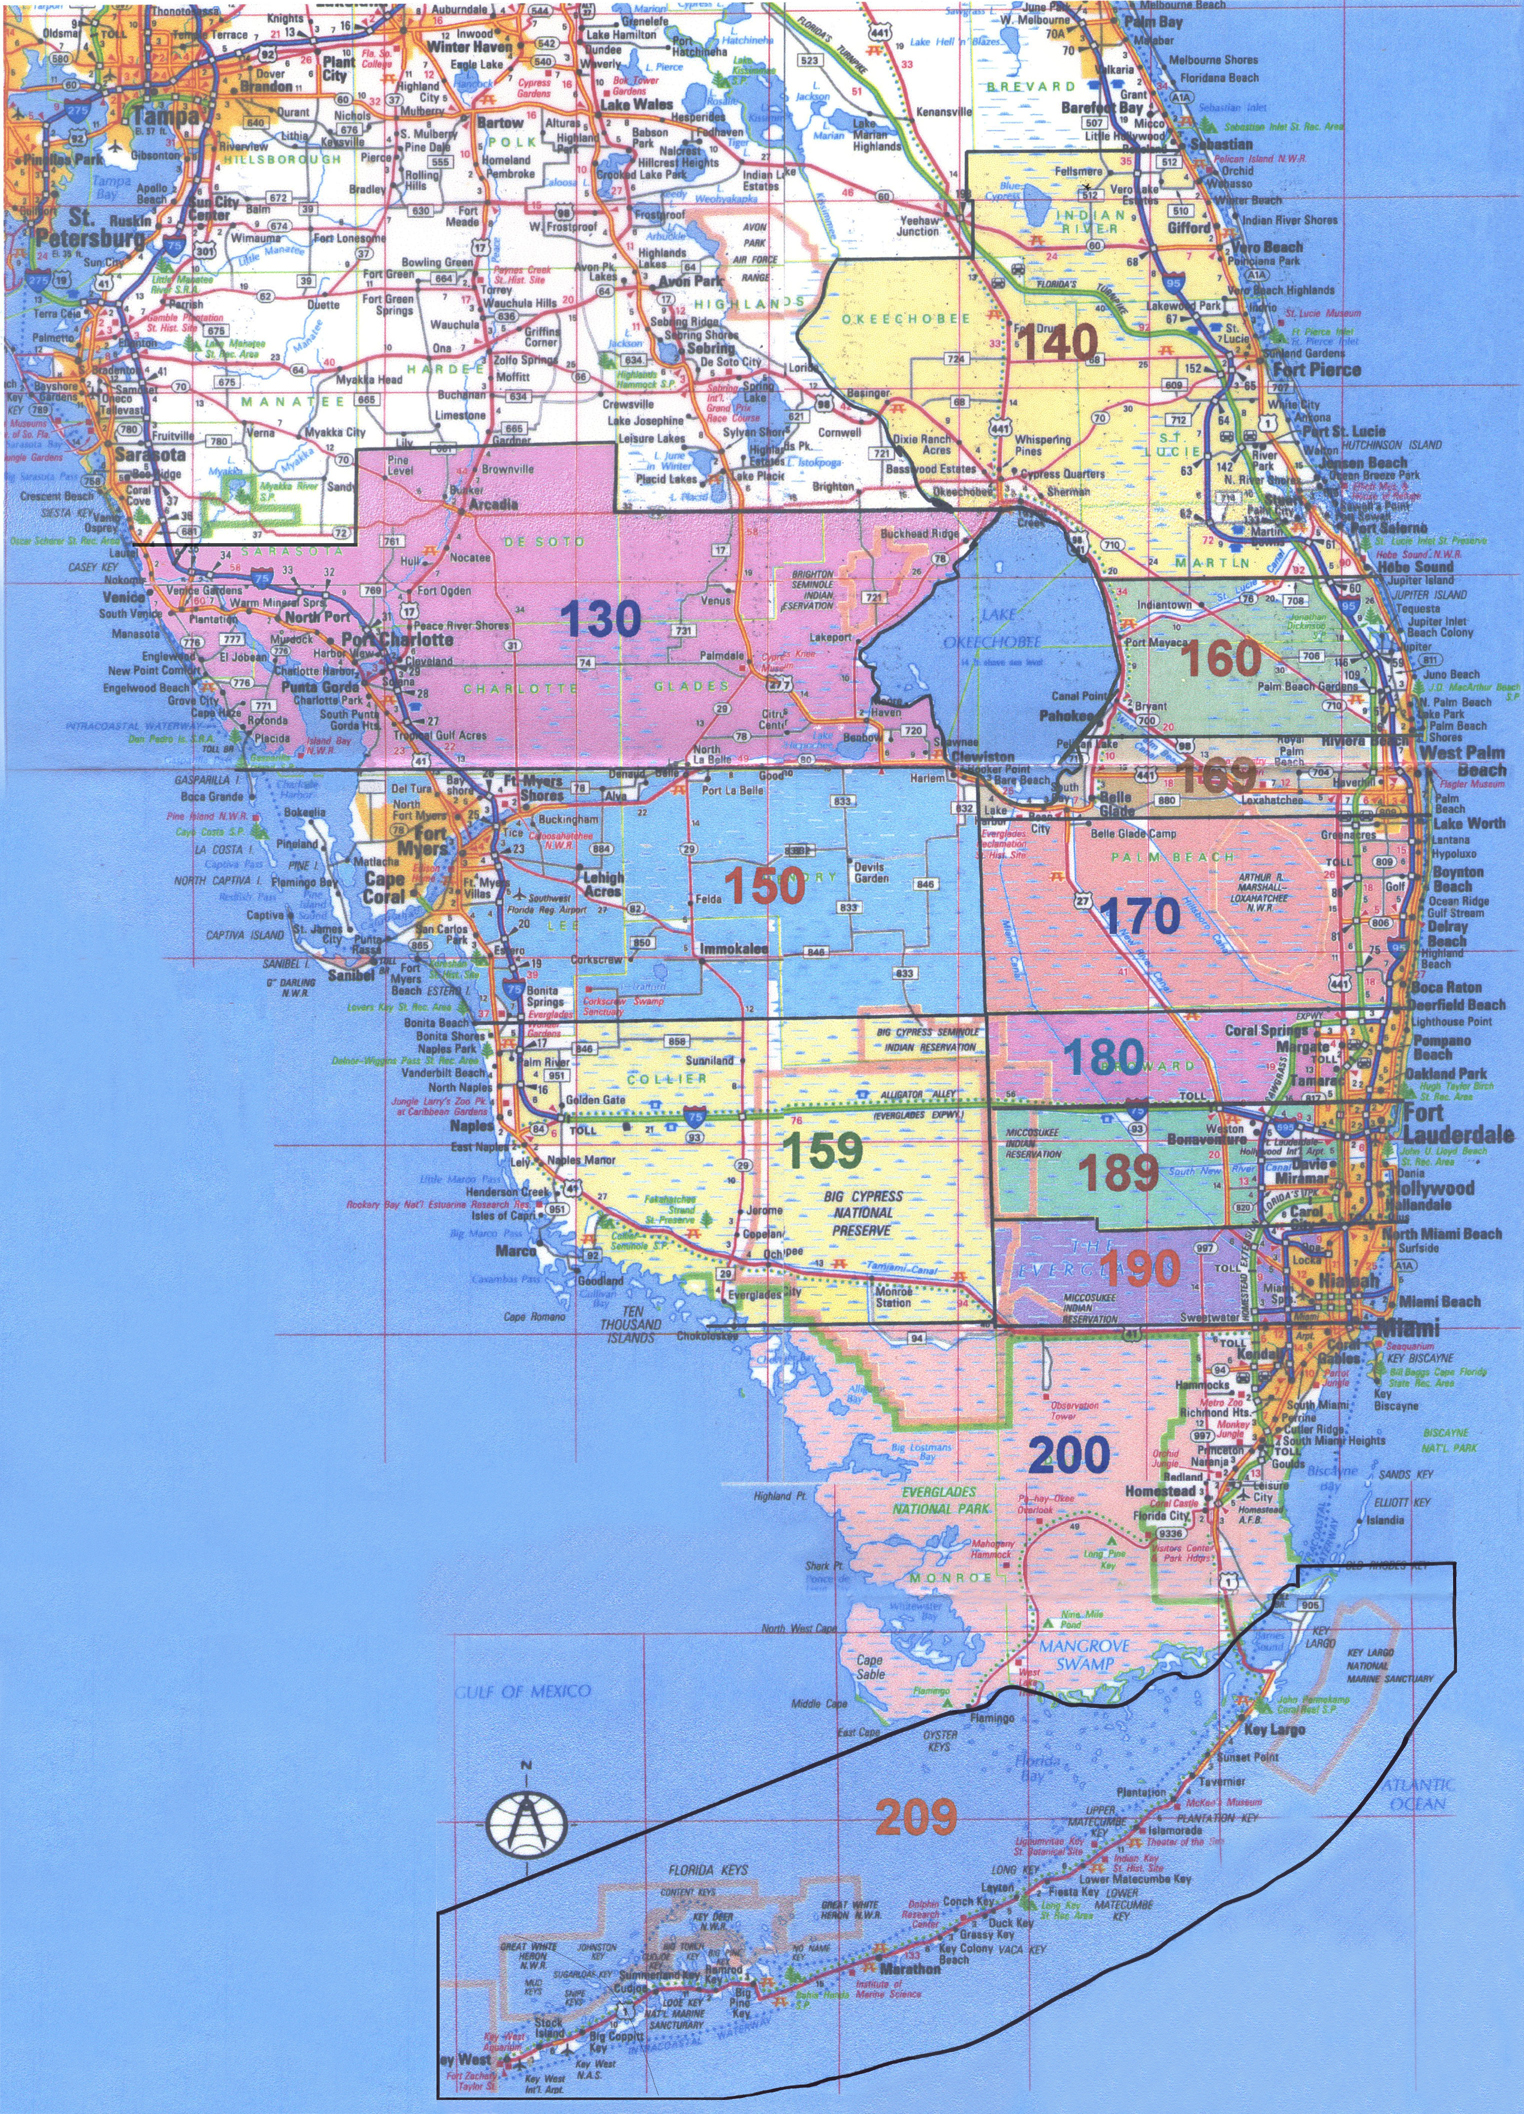 South Florida Zip Code Map.County Code Indian River Map Fl Zip